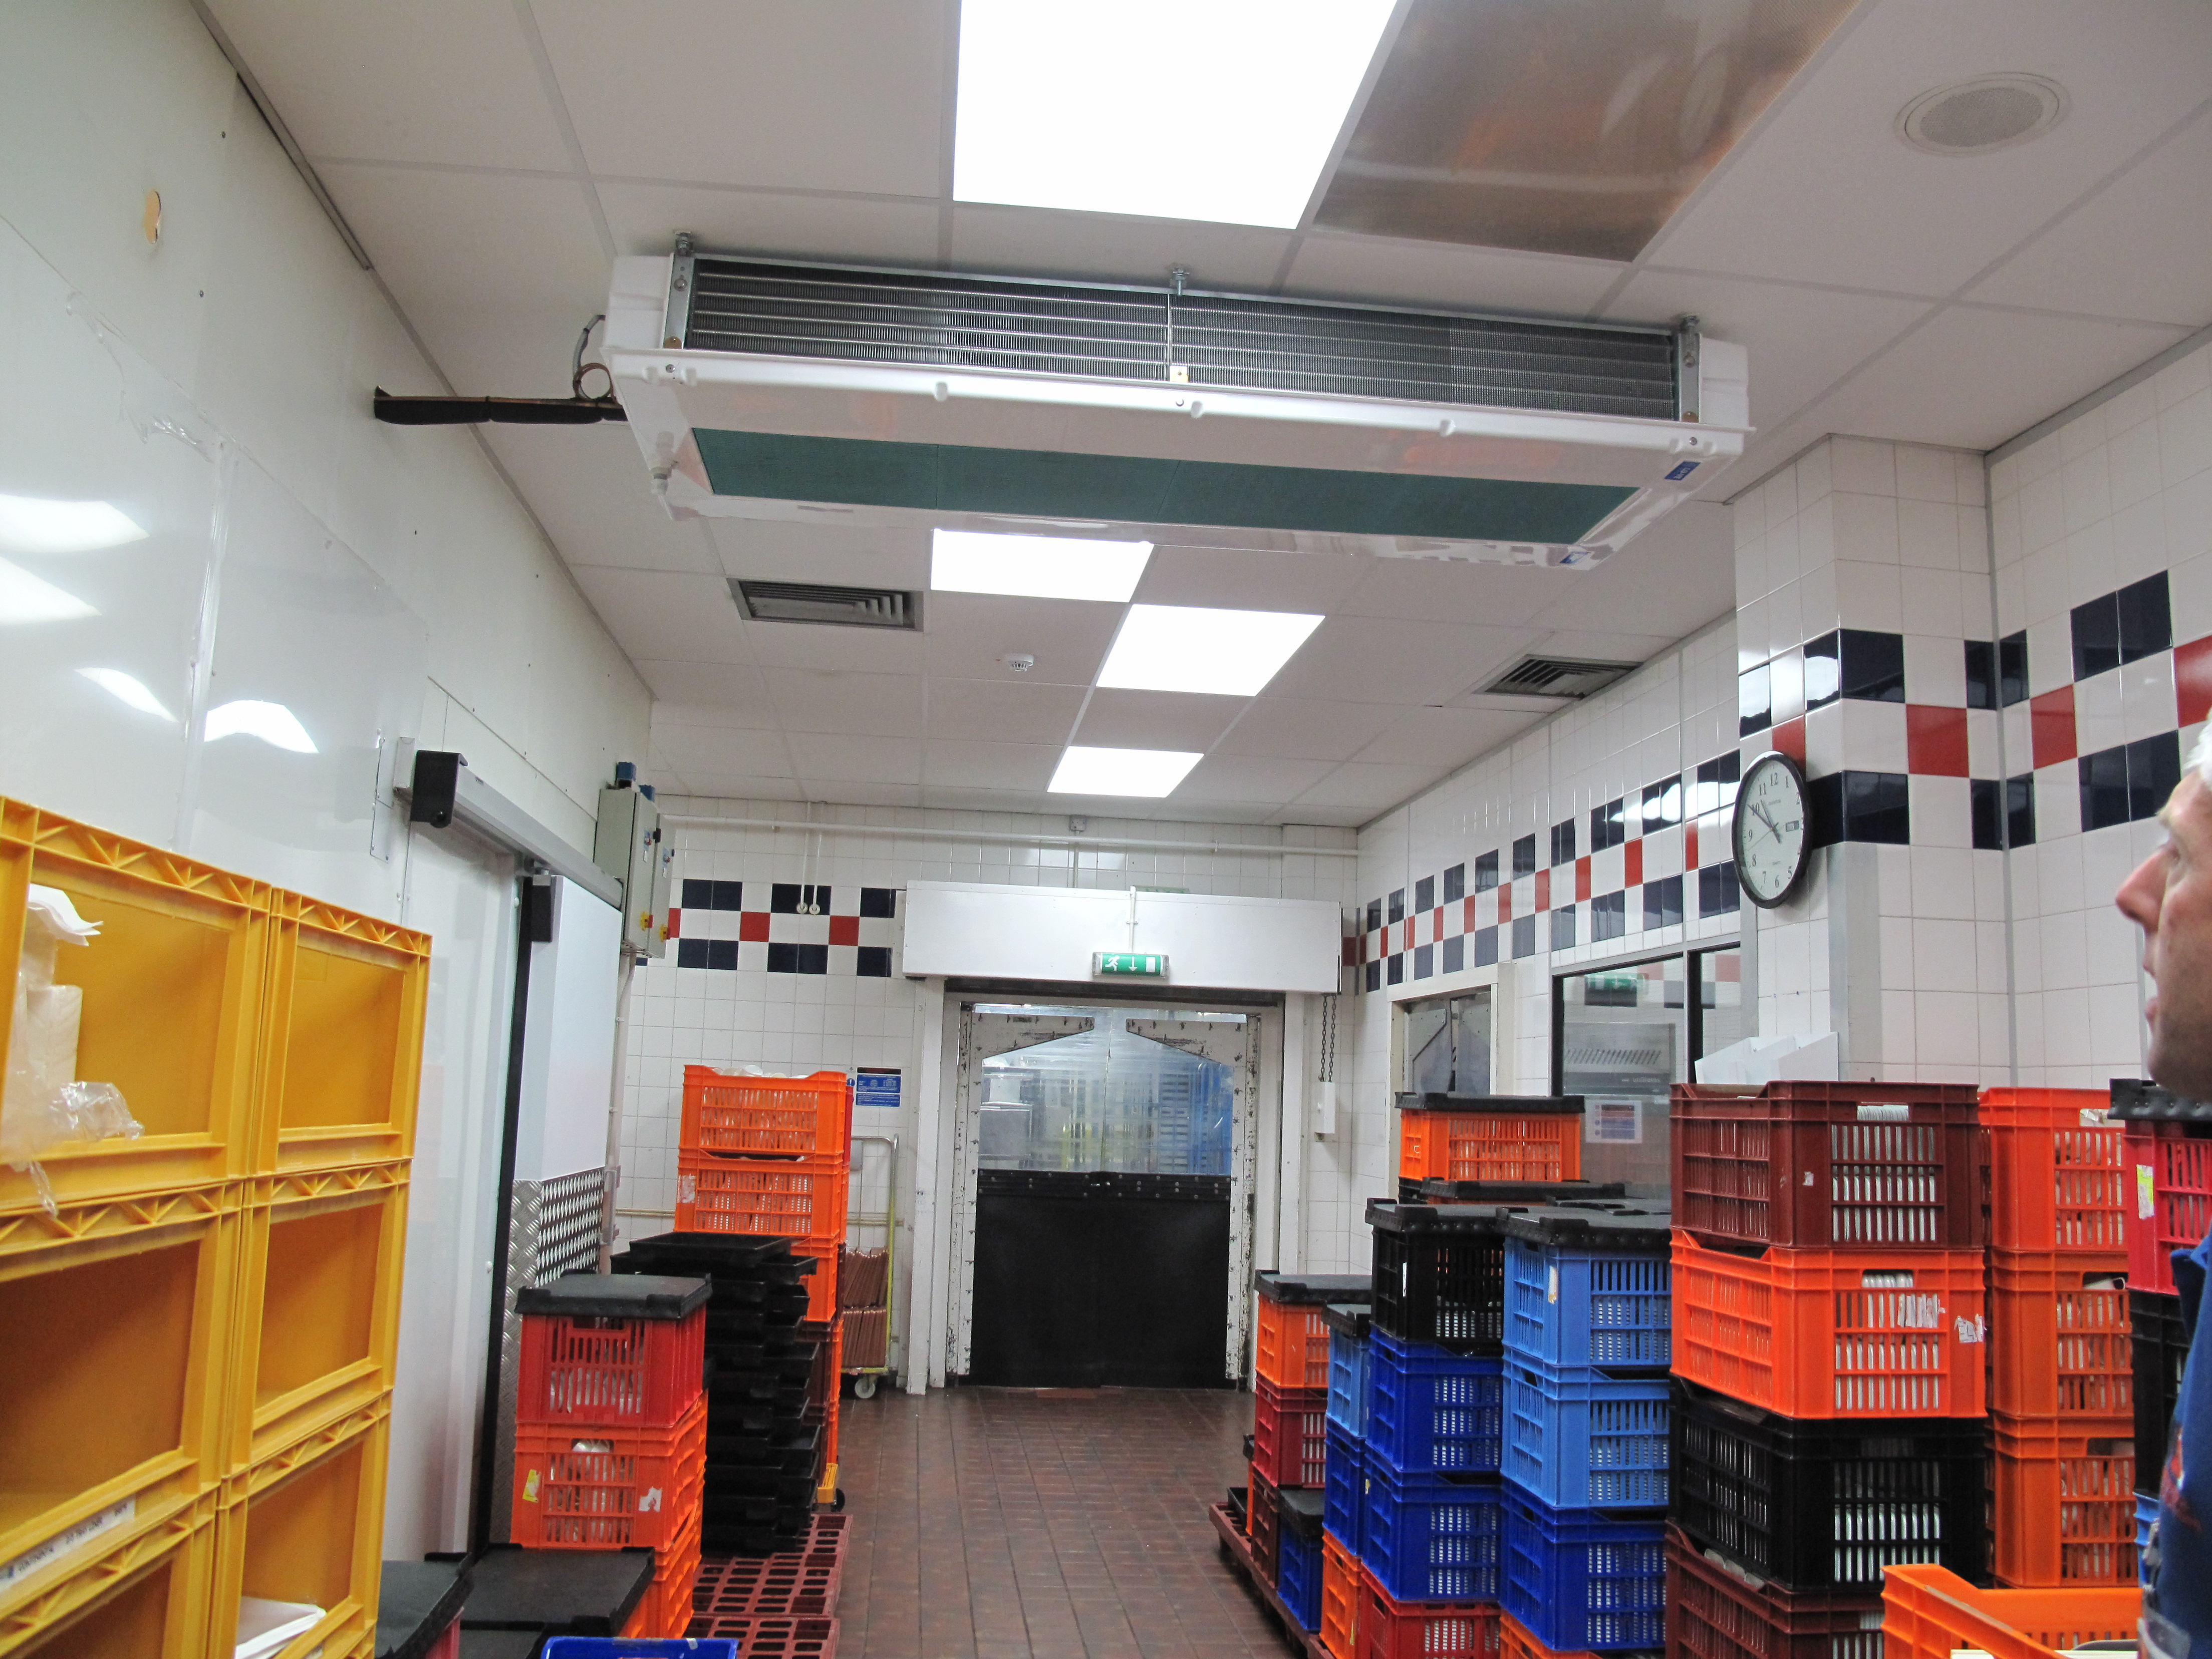 UK catering facility with SHDS cooler - Birmingham